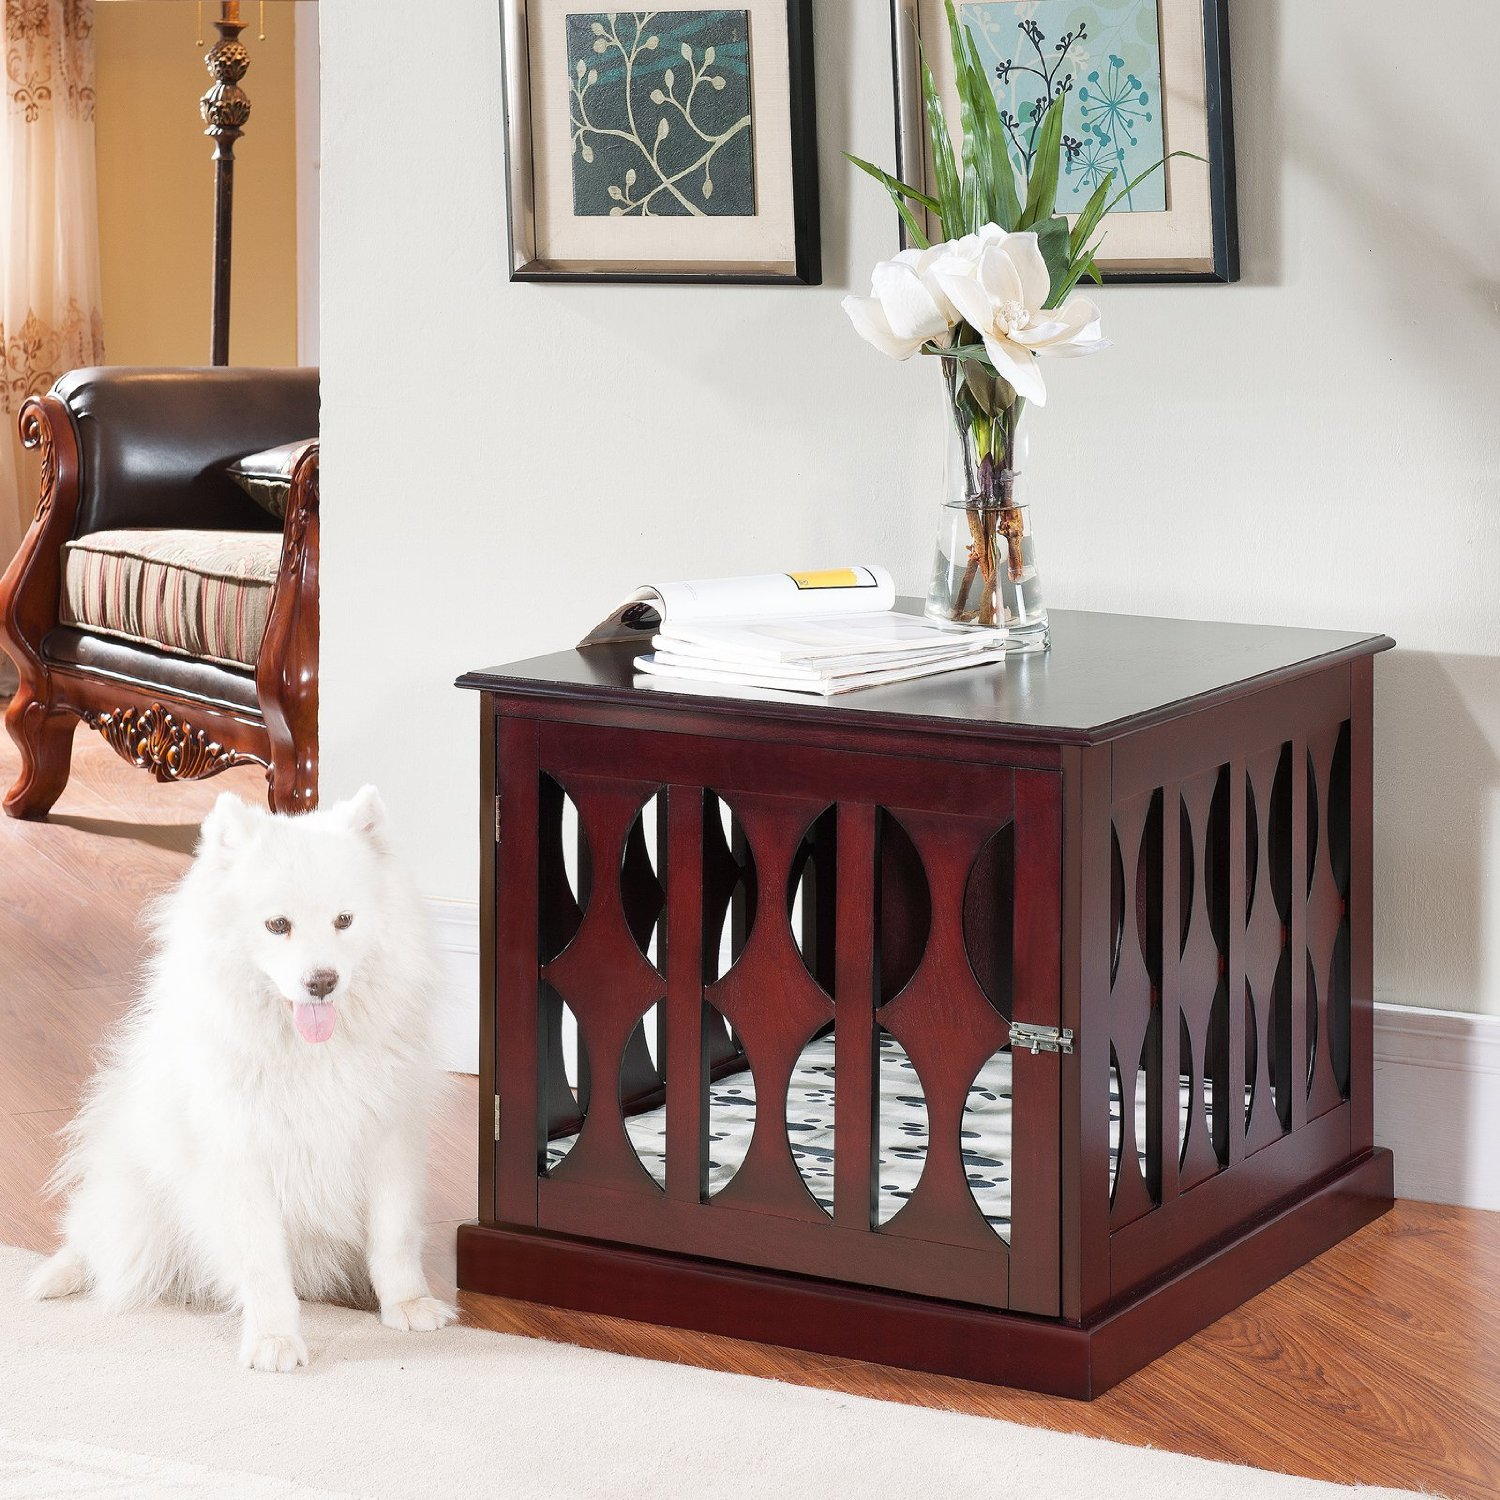 dog crate york dog cage york decorative wood dog crate that looks like furniture end - Decorative Dog Crates